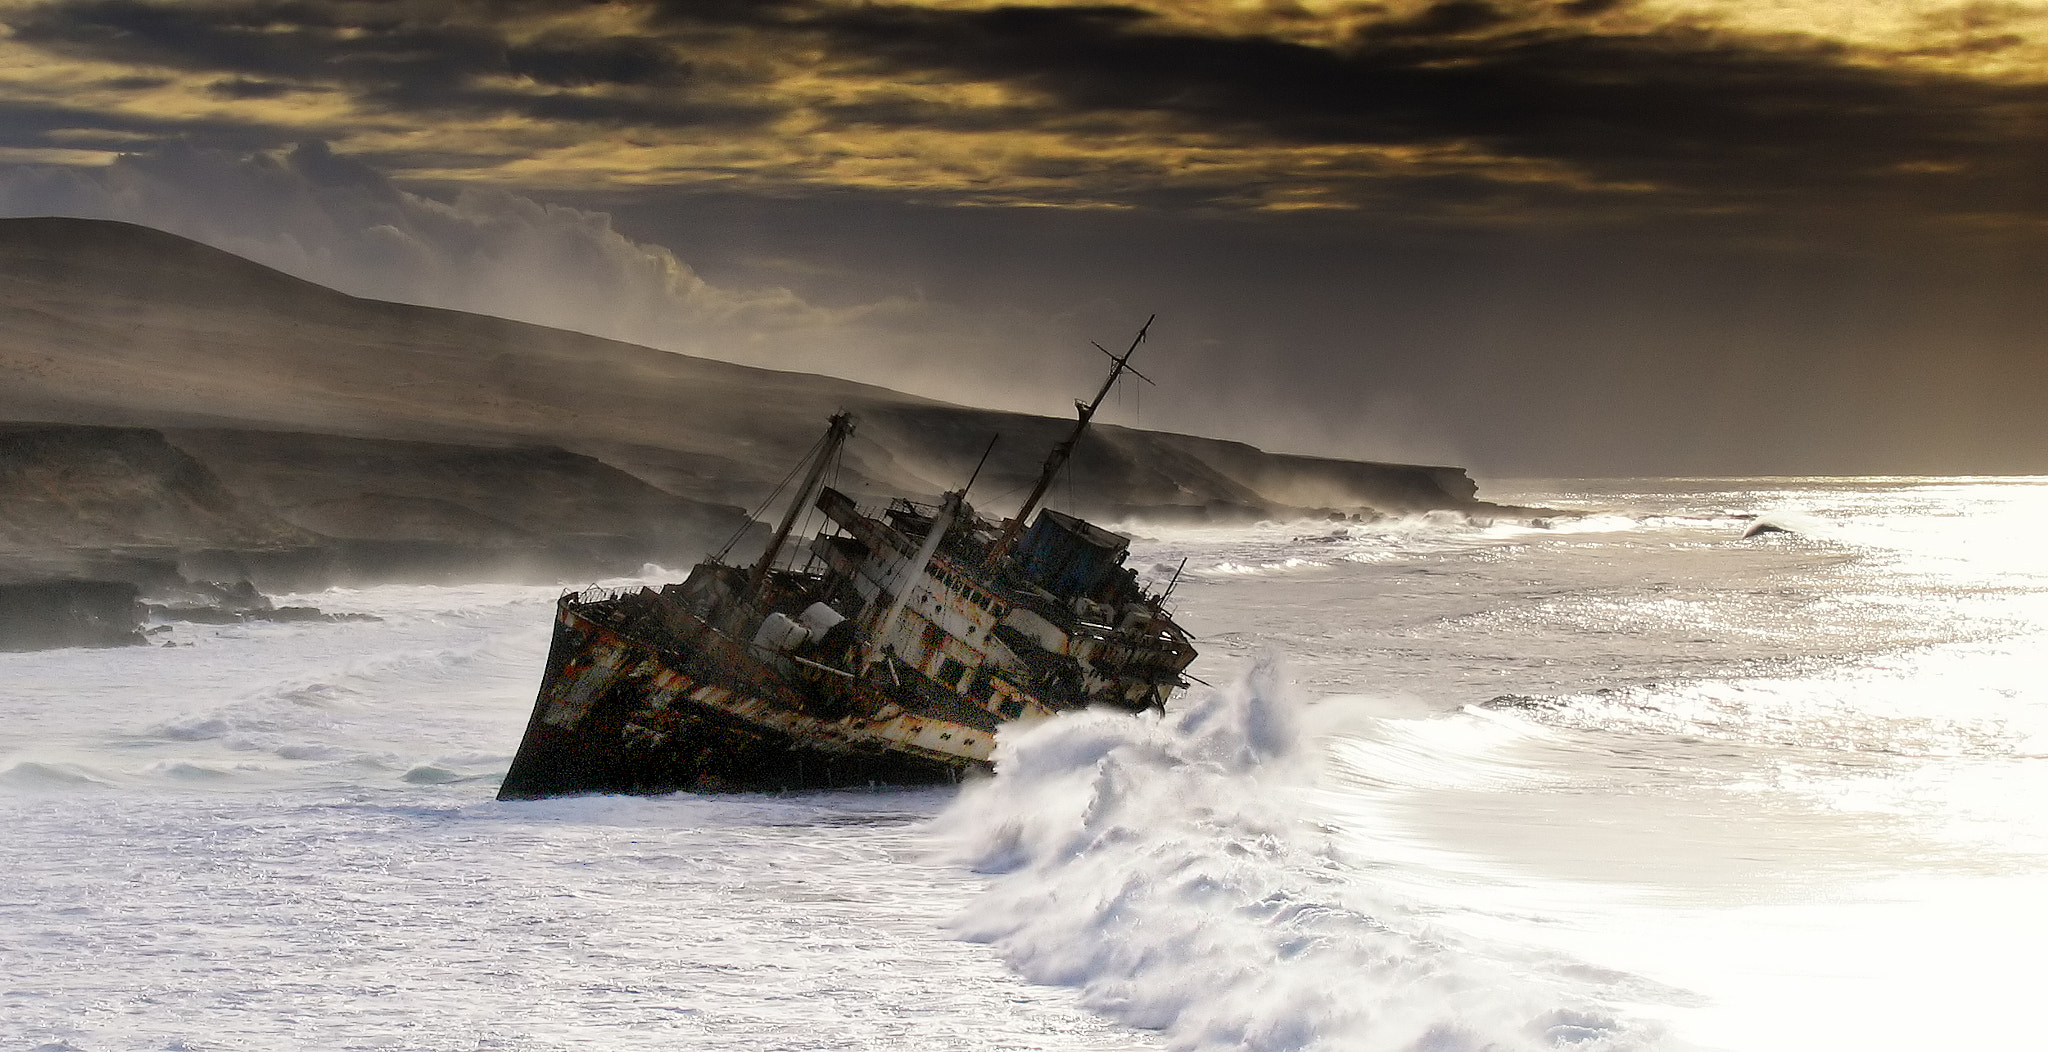 Photograph American Star shipwreck by Pedro López Batista on 500px